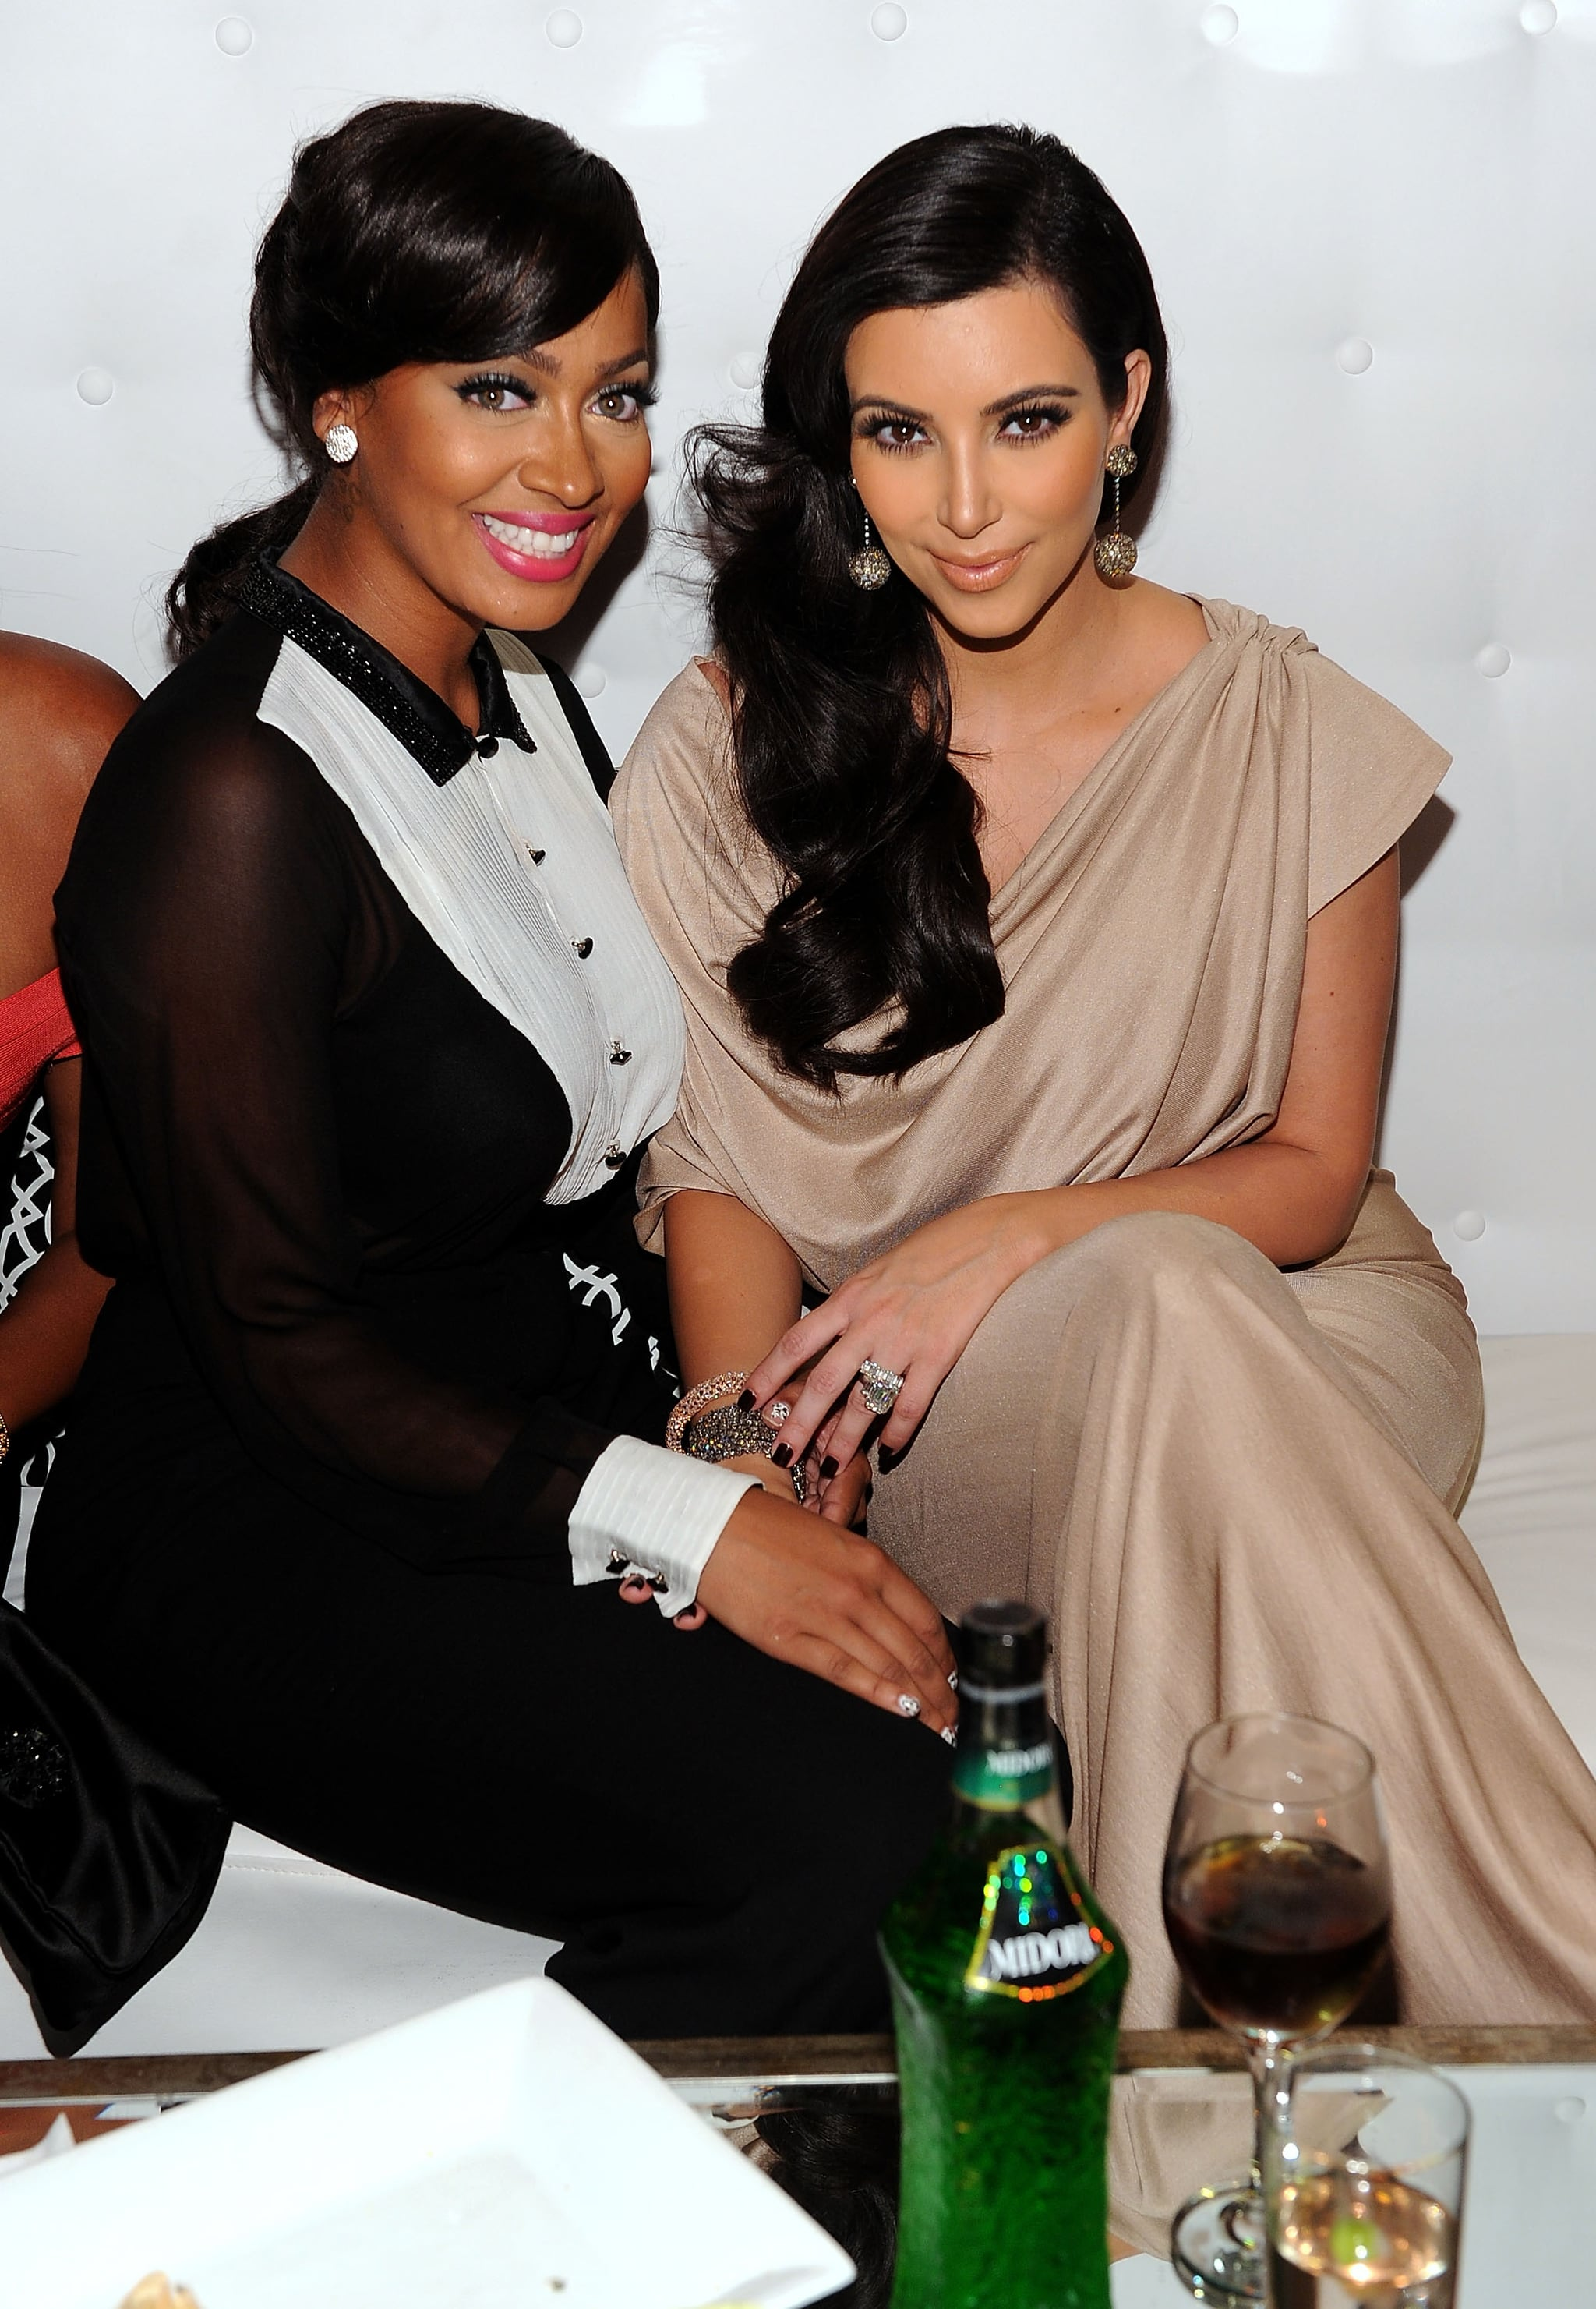 Lia La Anthony and Kim Kardashian